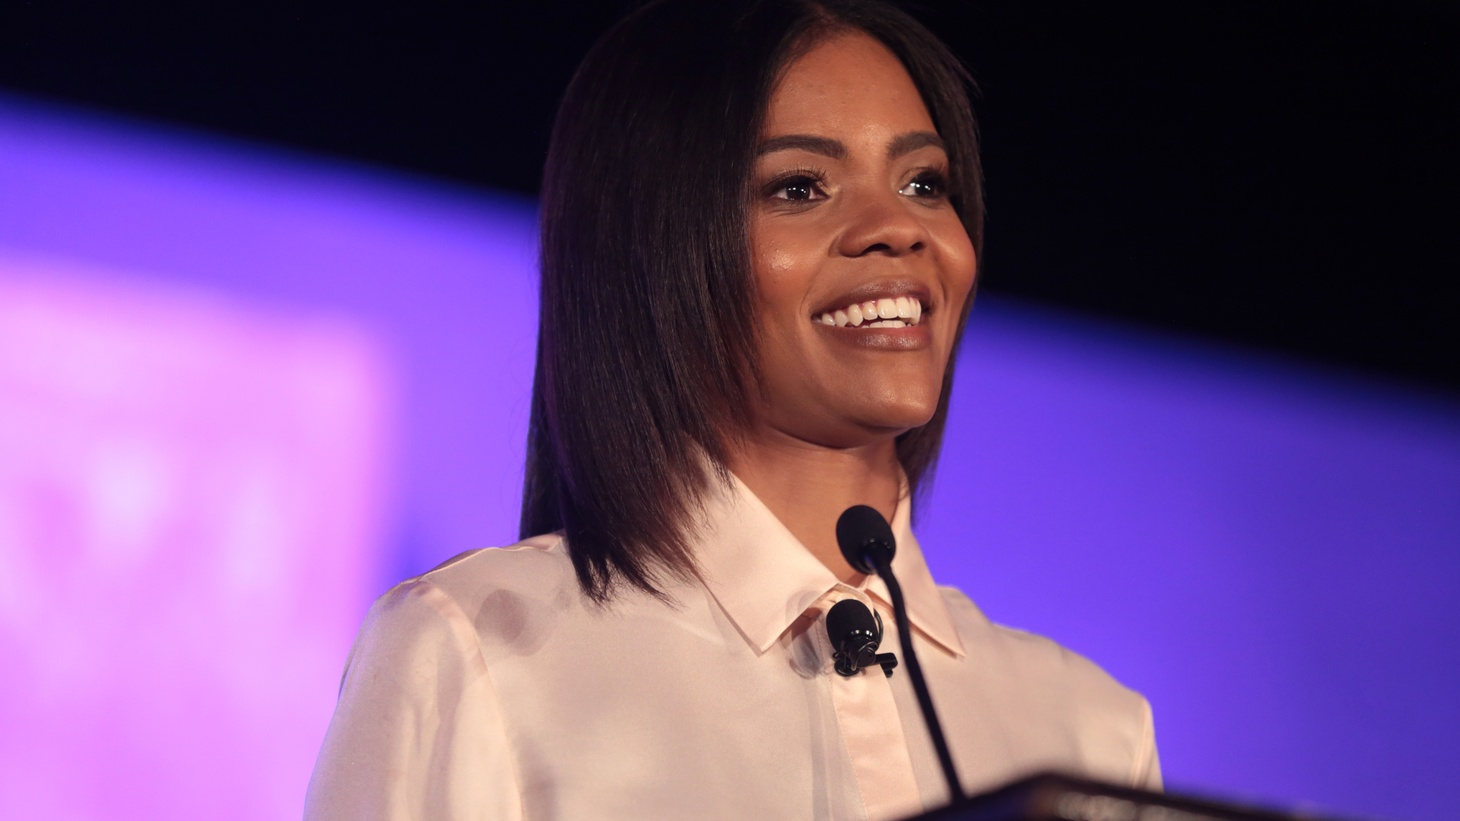 Candace Owens speaking with attendees at the 2018 Young Women's Leadership Summit, hosted by Turning Point USA at the Hyatt Regency DFW Hotel in Dallas, Texas.